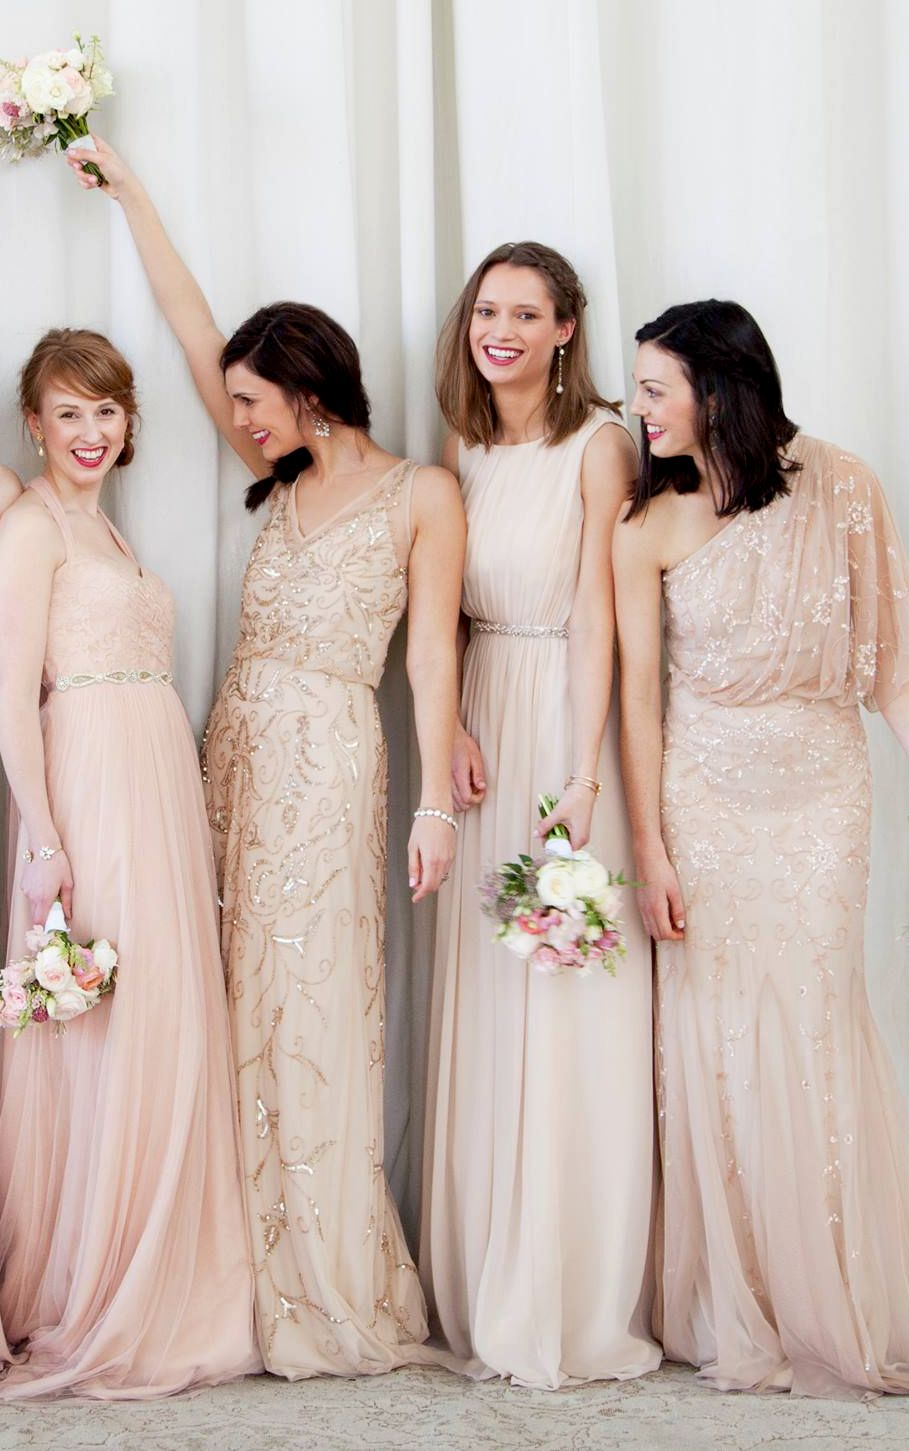 922ab14a98 Blush bridesmaids- bridesmaids choose their own dress? What do you guys  think?